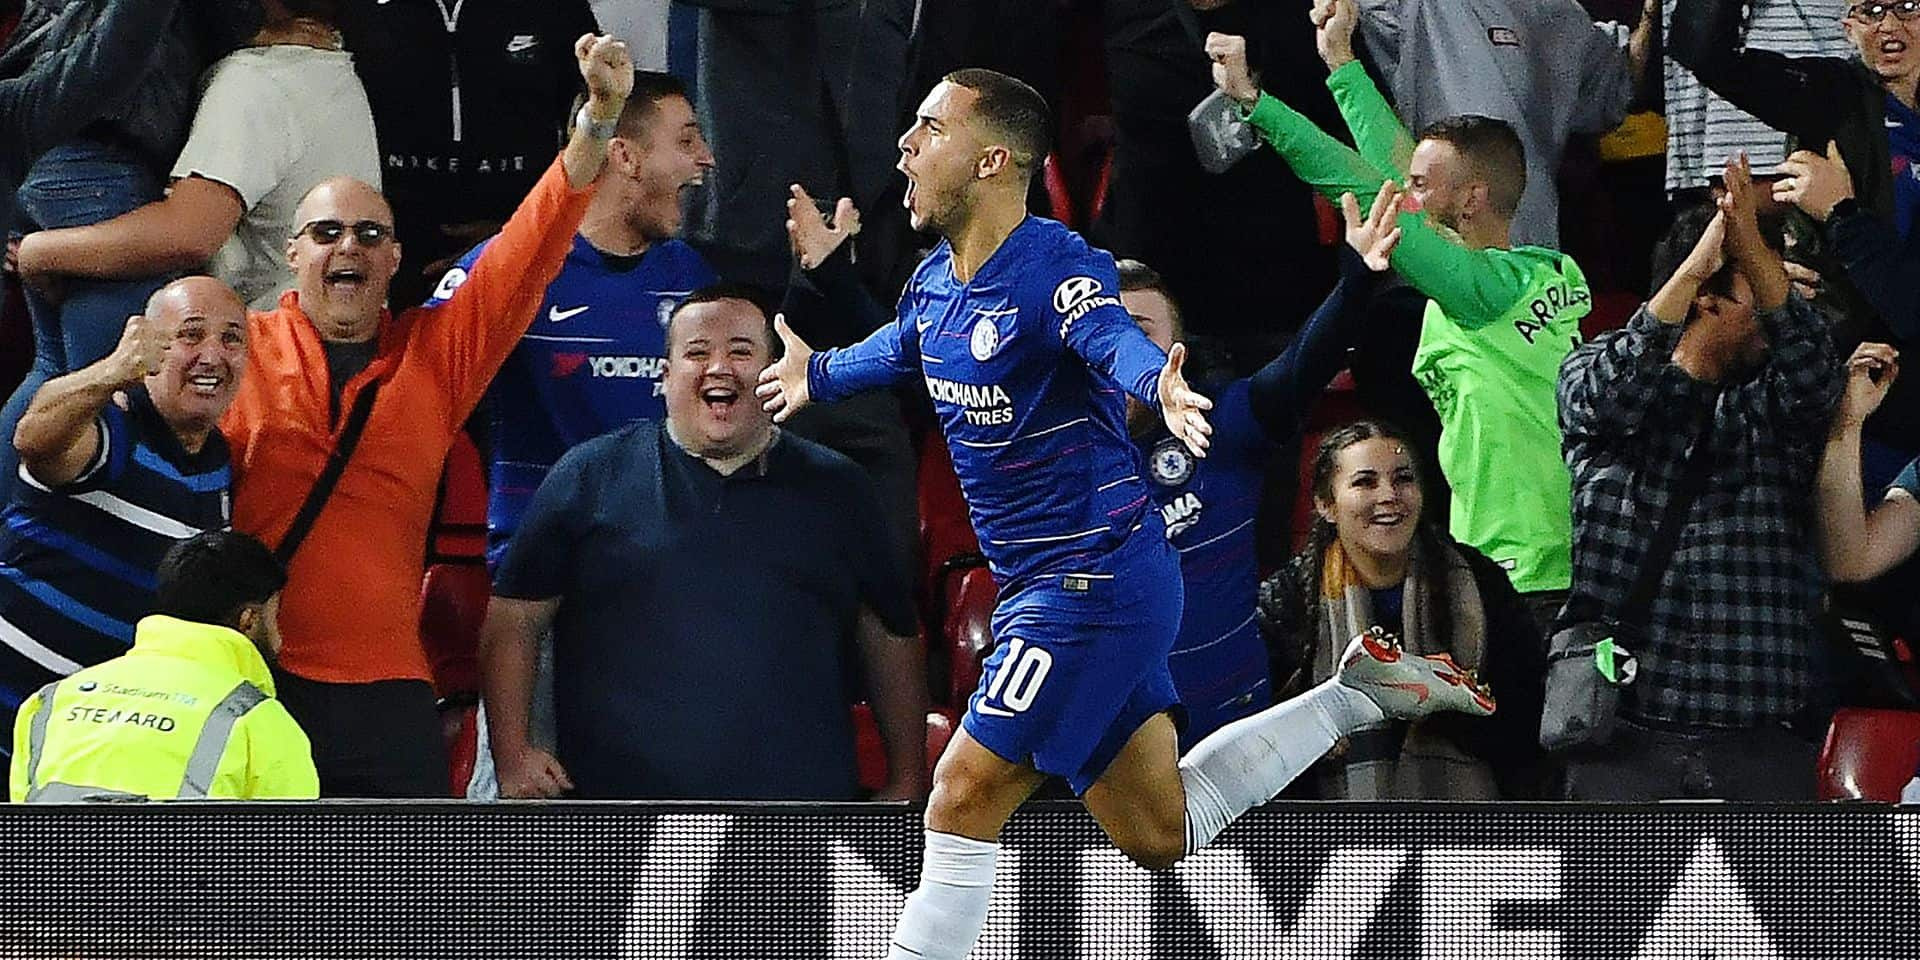 Chelsea's Belgian midfielder Eden Hazard celebrates scoring his team's second goal during the English League Cup third round football match between Liverpool and Chelsea at Anfield in Liverpool, north west England on September 26, 2018. (Photo by Paul ELLIS / AFP) / RESTRICTED TO EDITORIAL USE. No use with unauthorized audio, video, data, fixture lists, club/league logos or 'live' services. Online in-match use limited to 120 images. An additional 40 images may be used in extra time. No video emulation. Social media in-match use limited to 120 images. An additional 40 images may be used in extra time. No use in betting publications, games or single club/league/player publications. /